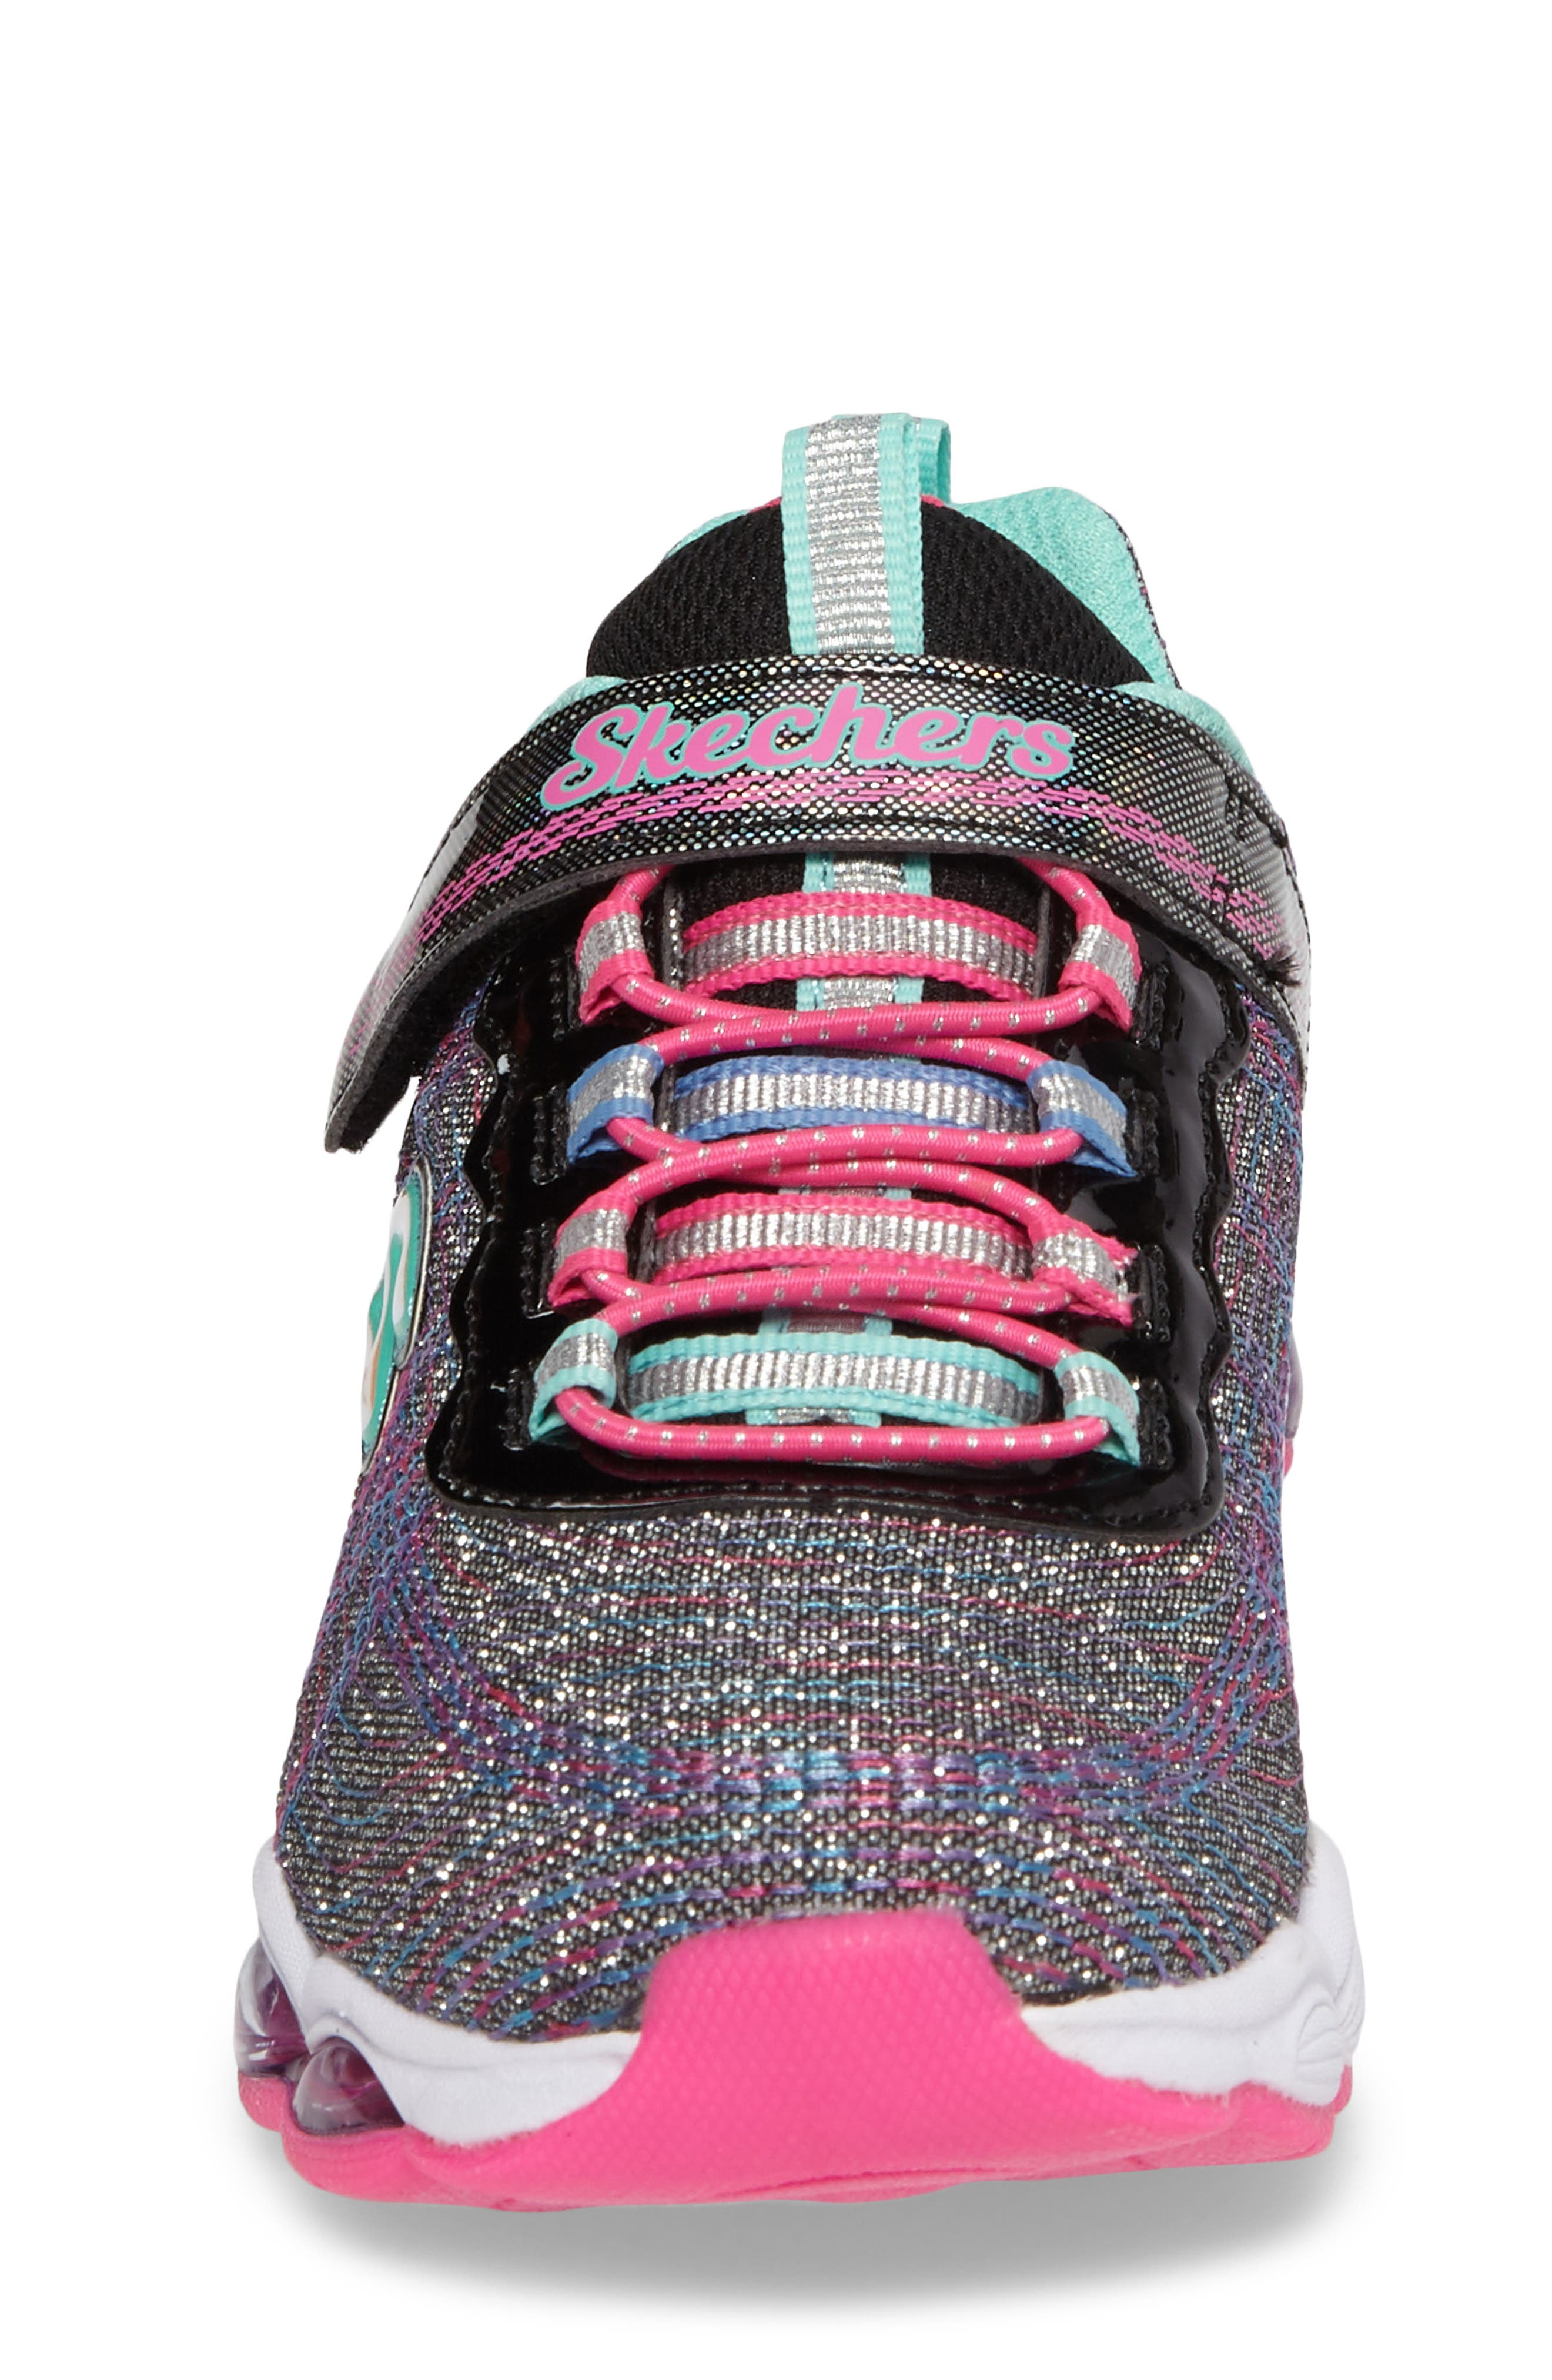 Glimmer Lights Sneakers,                             Alternate thumbnail 4, color,                             001